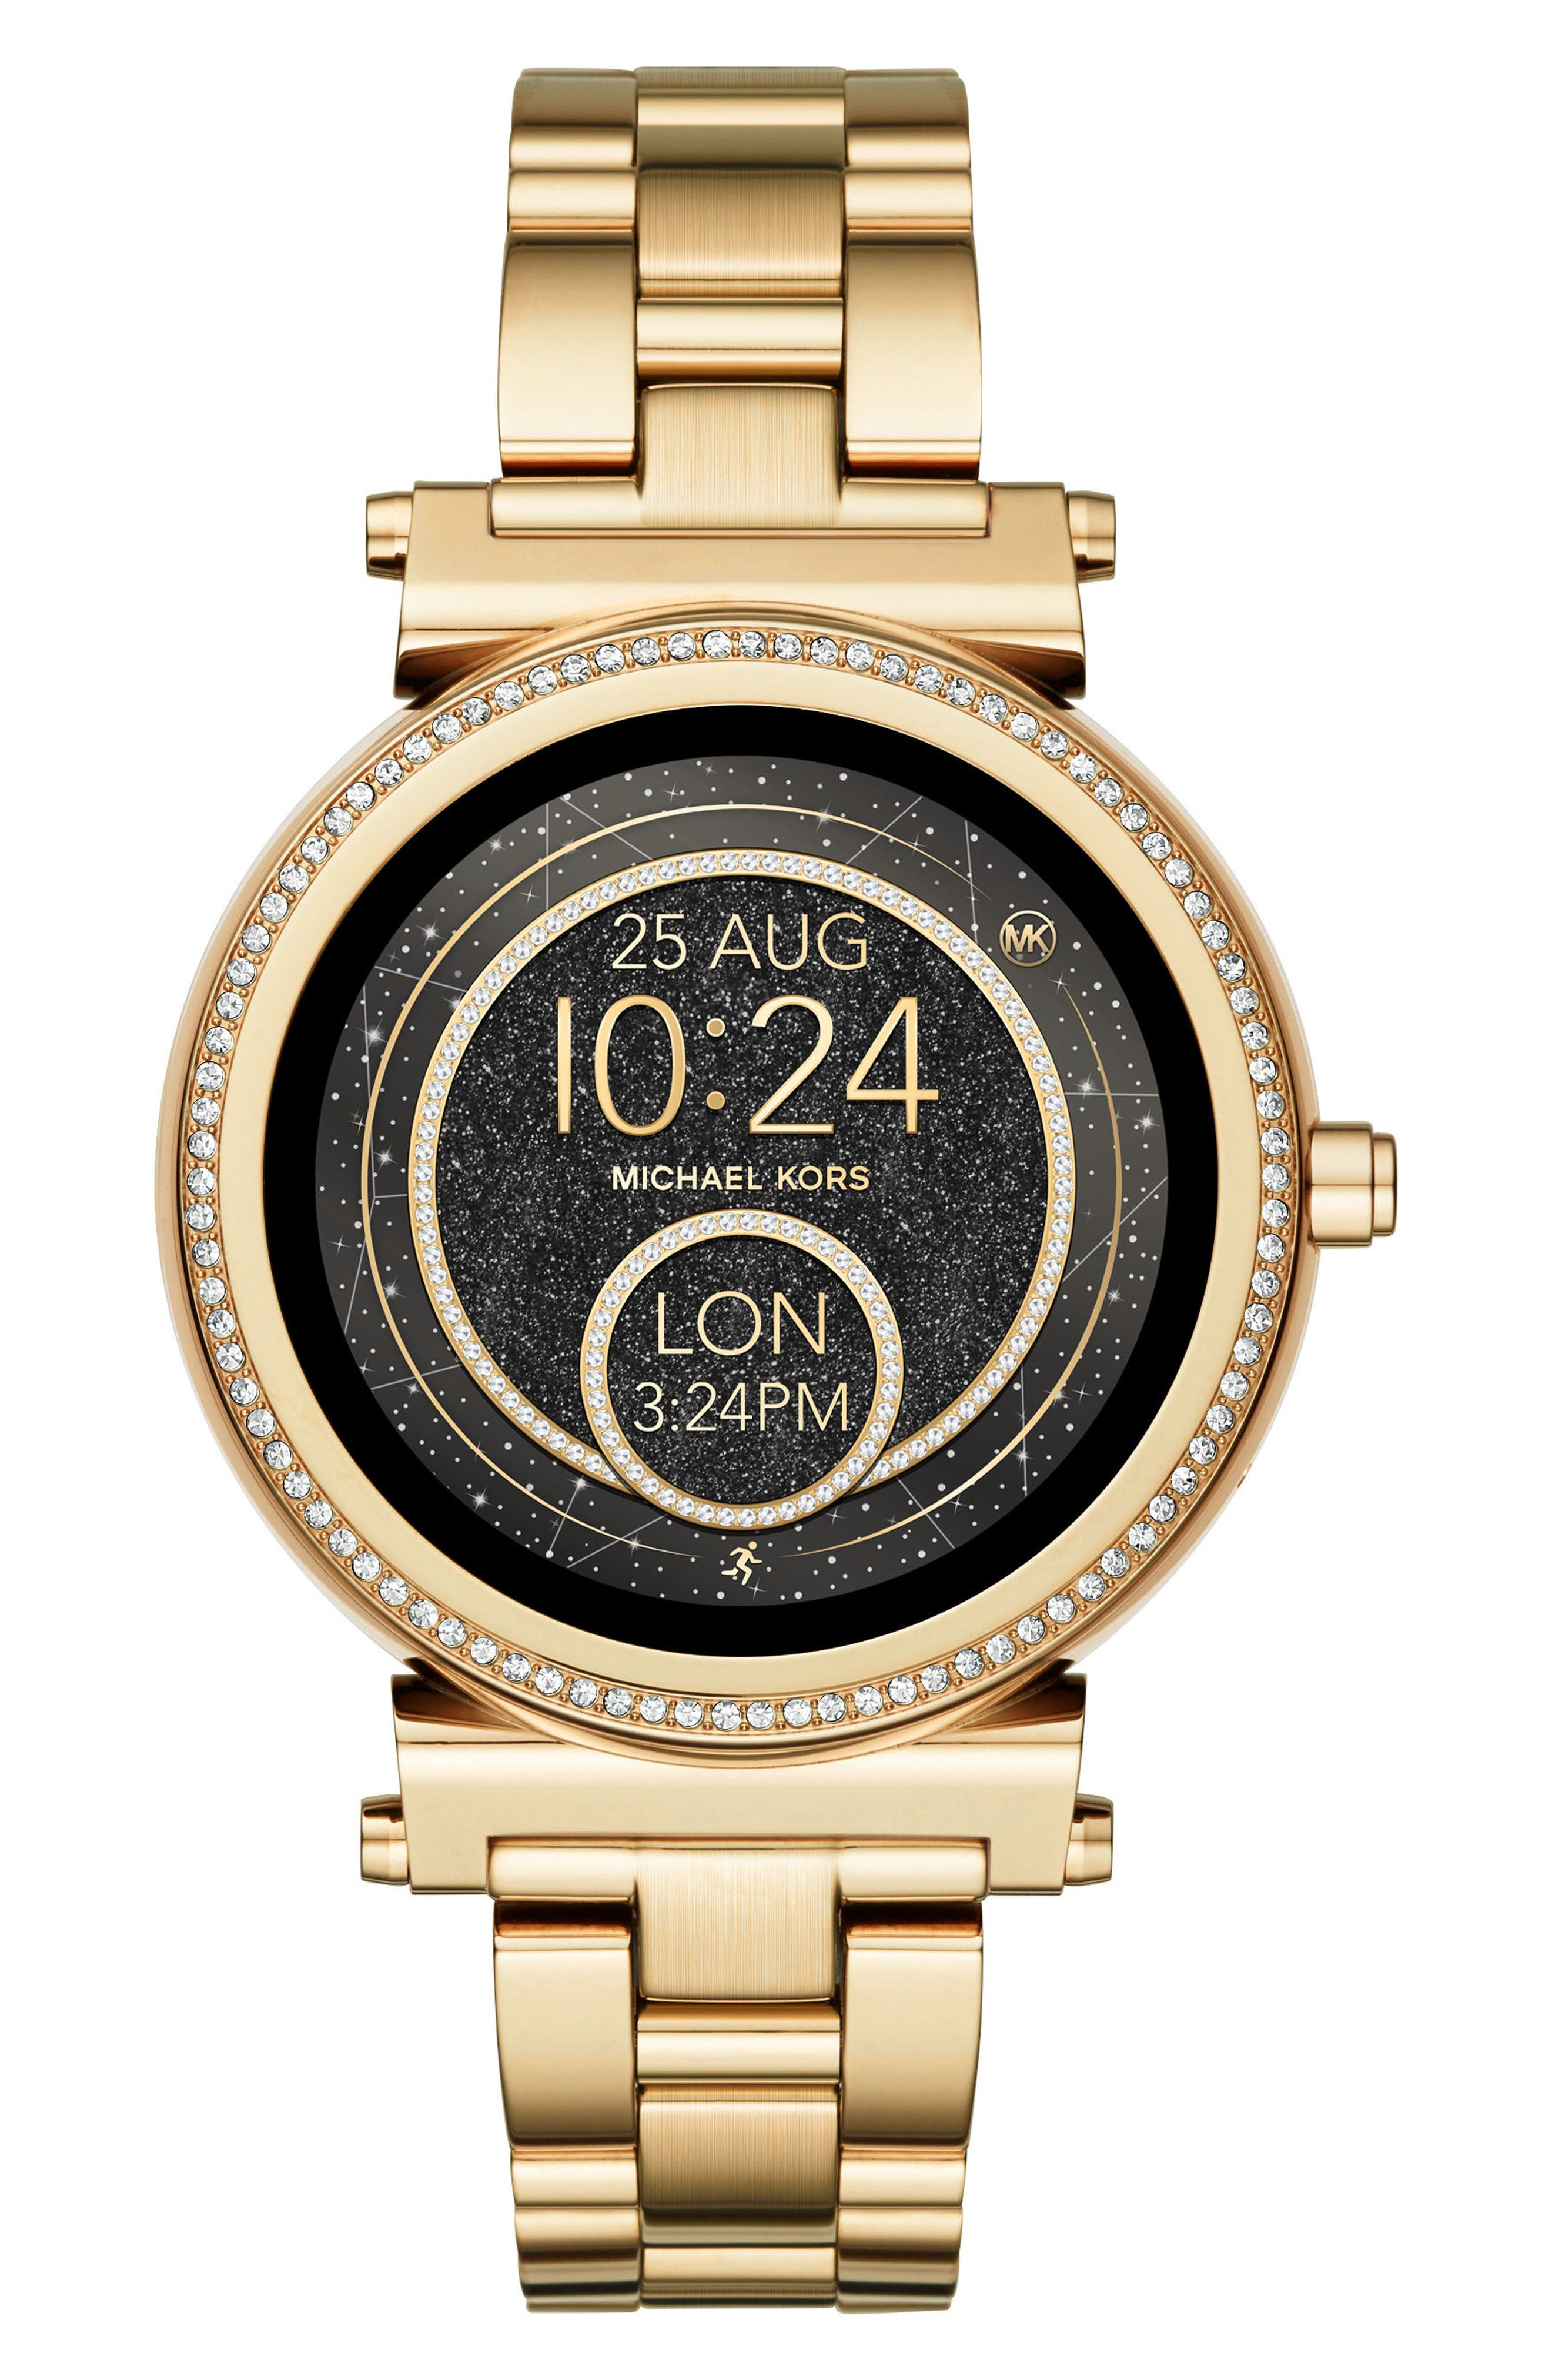 MICHAEL KORS ACCESS Sofie Smart Bracelet Watch, 42Mm in Gold/ Black/ Gold